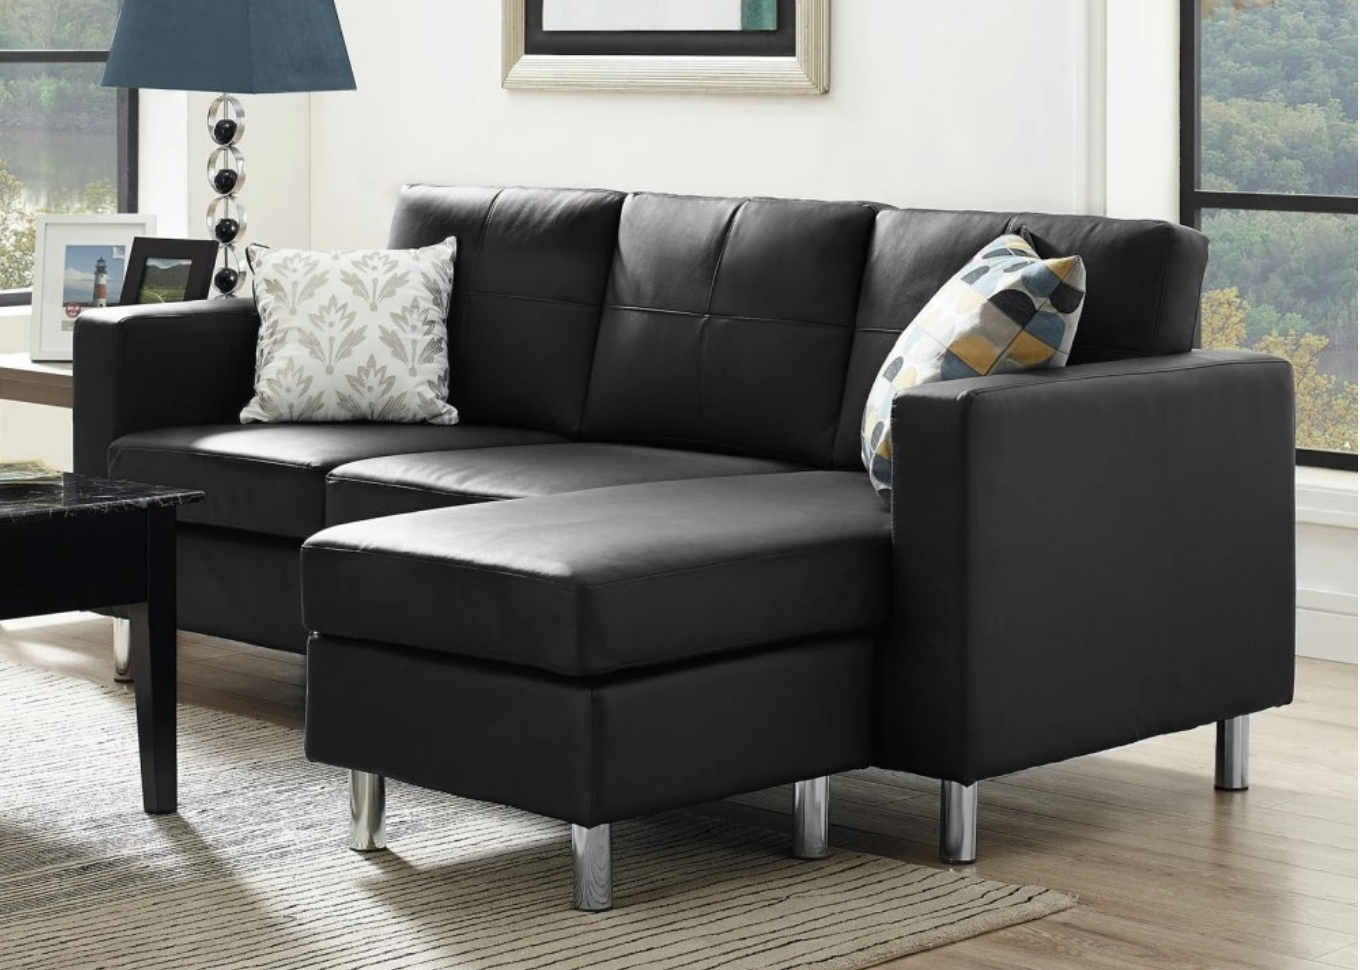 75 Modern Sectional Sofas For Small Spaces (2018) In Preferred Inexpensive Sectional Sofas For Small Spaces (View 2 of 15)